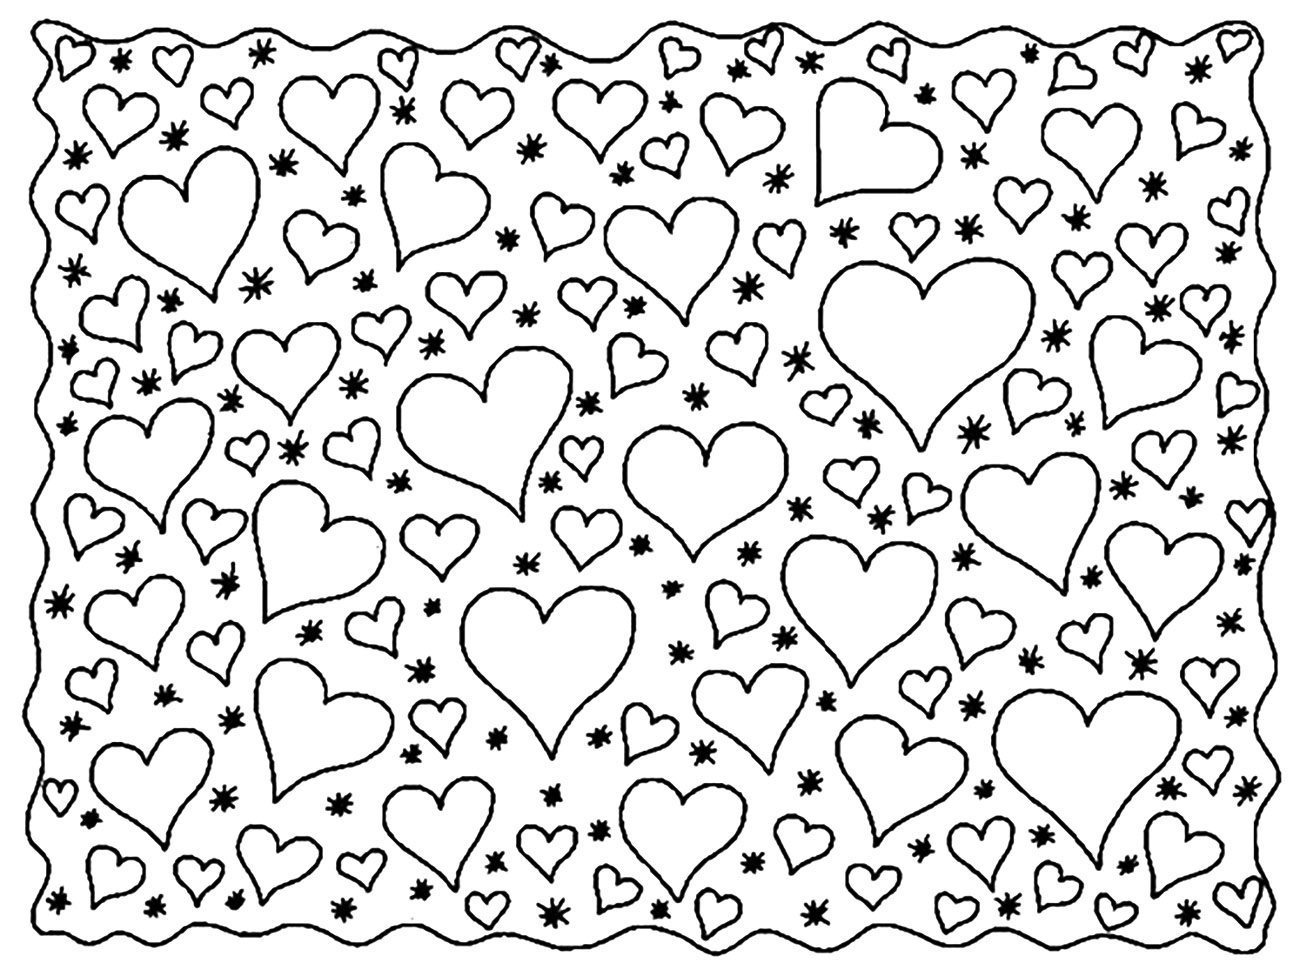 hearts coloring sheet heart coloring pages for adults hearts coloring sheet